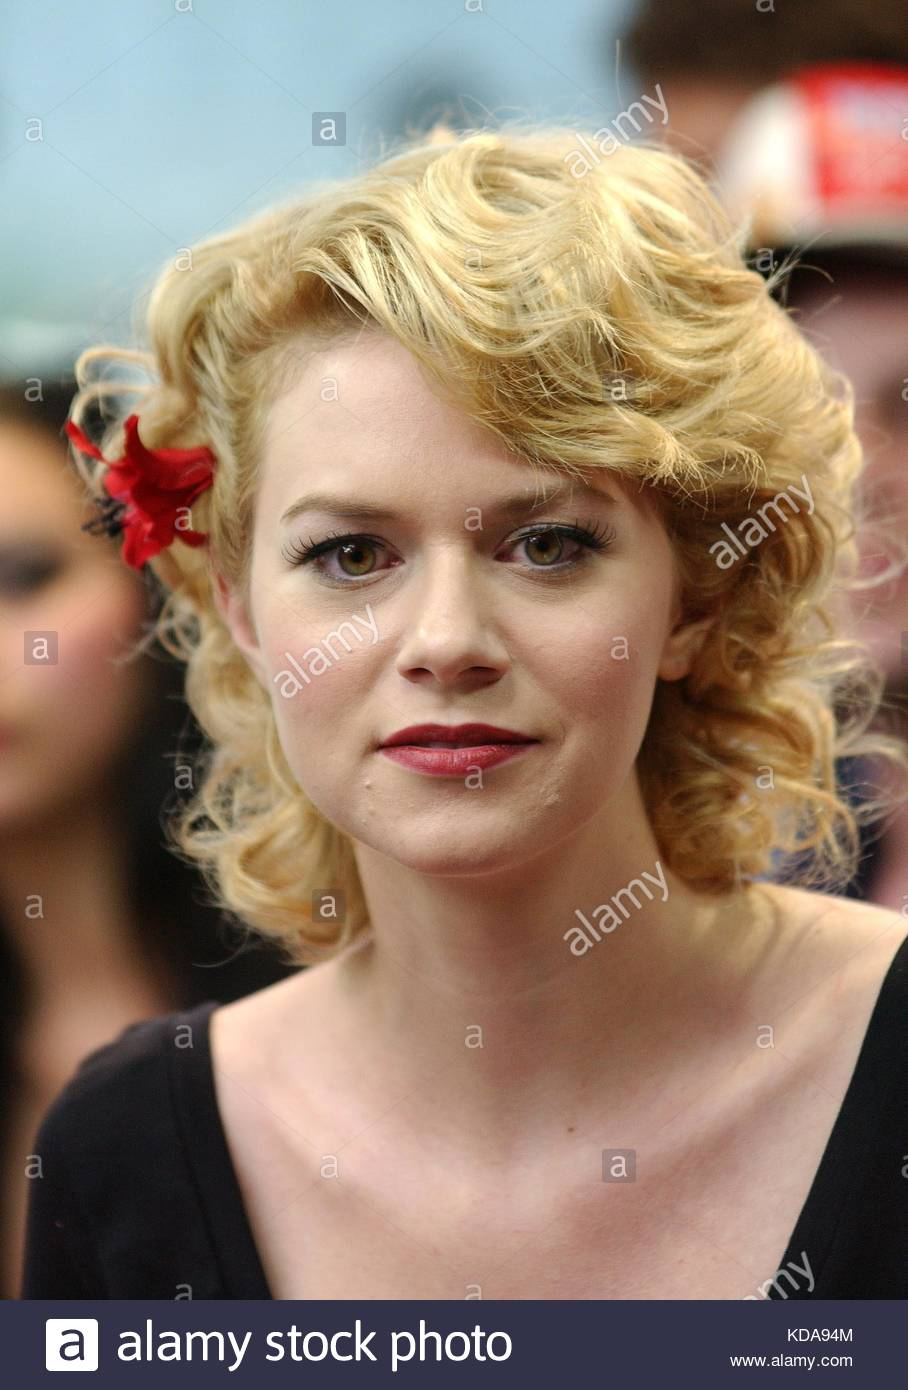 hilarie burton dating Hilarie ross burton is an american actress and producer a former host of mtv's total request live burton gained wider recognition with leading roles in the films our very own , solstice and the list.